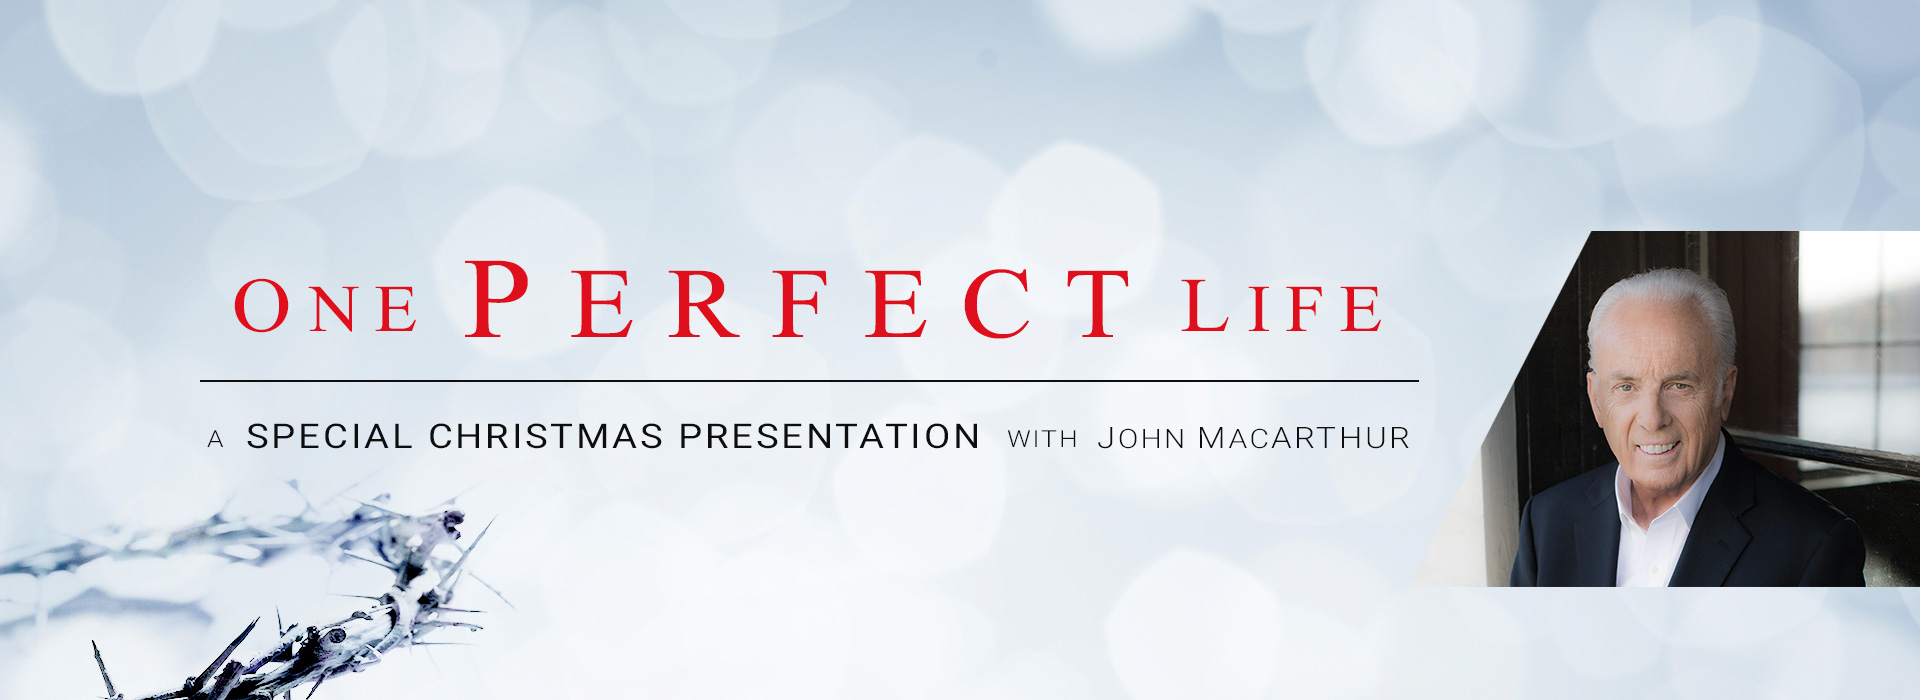 One Perfect Life - A Special Christmas Presentation with John MacArthur